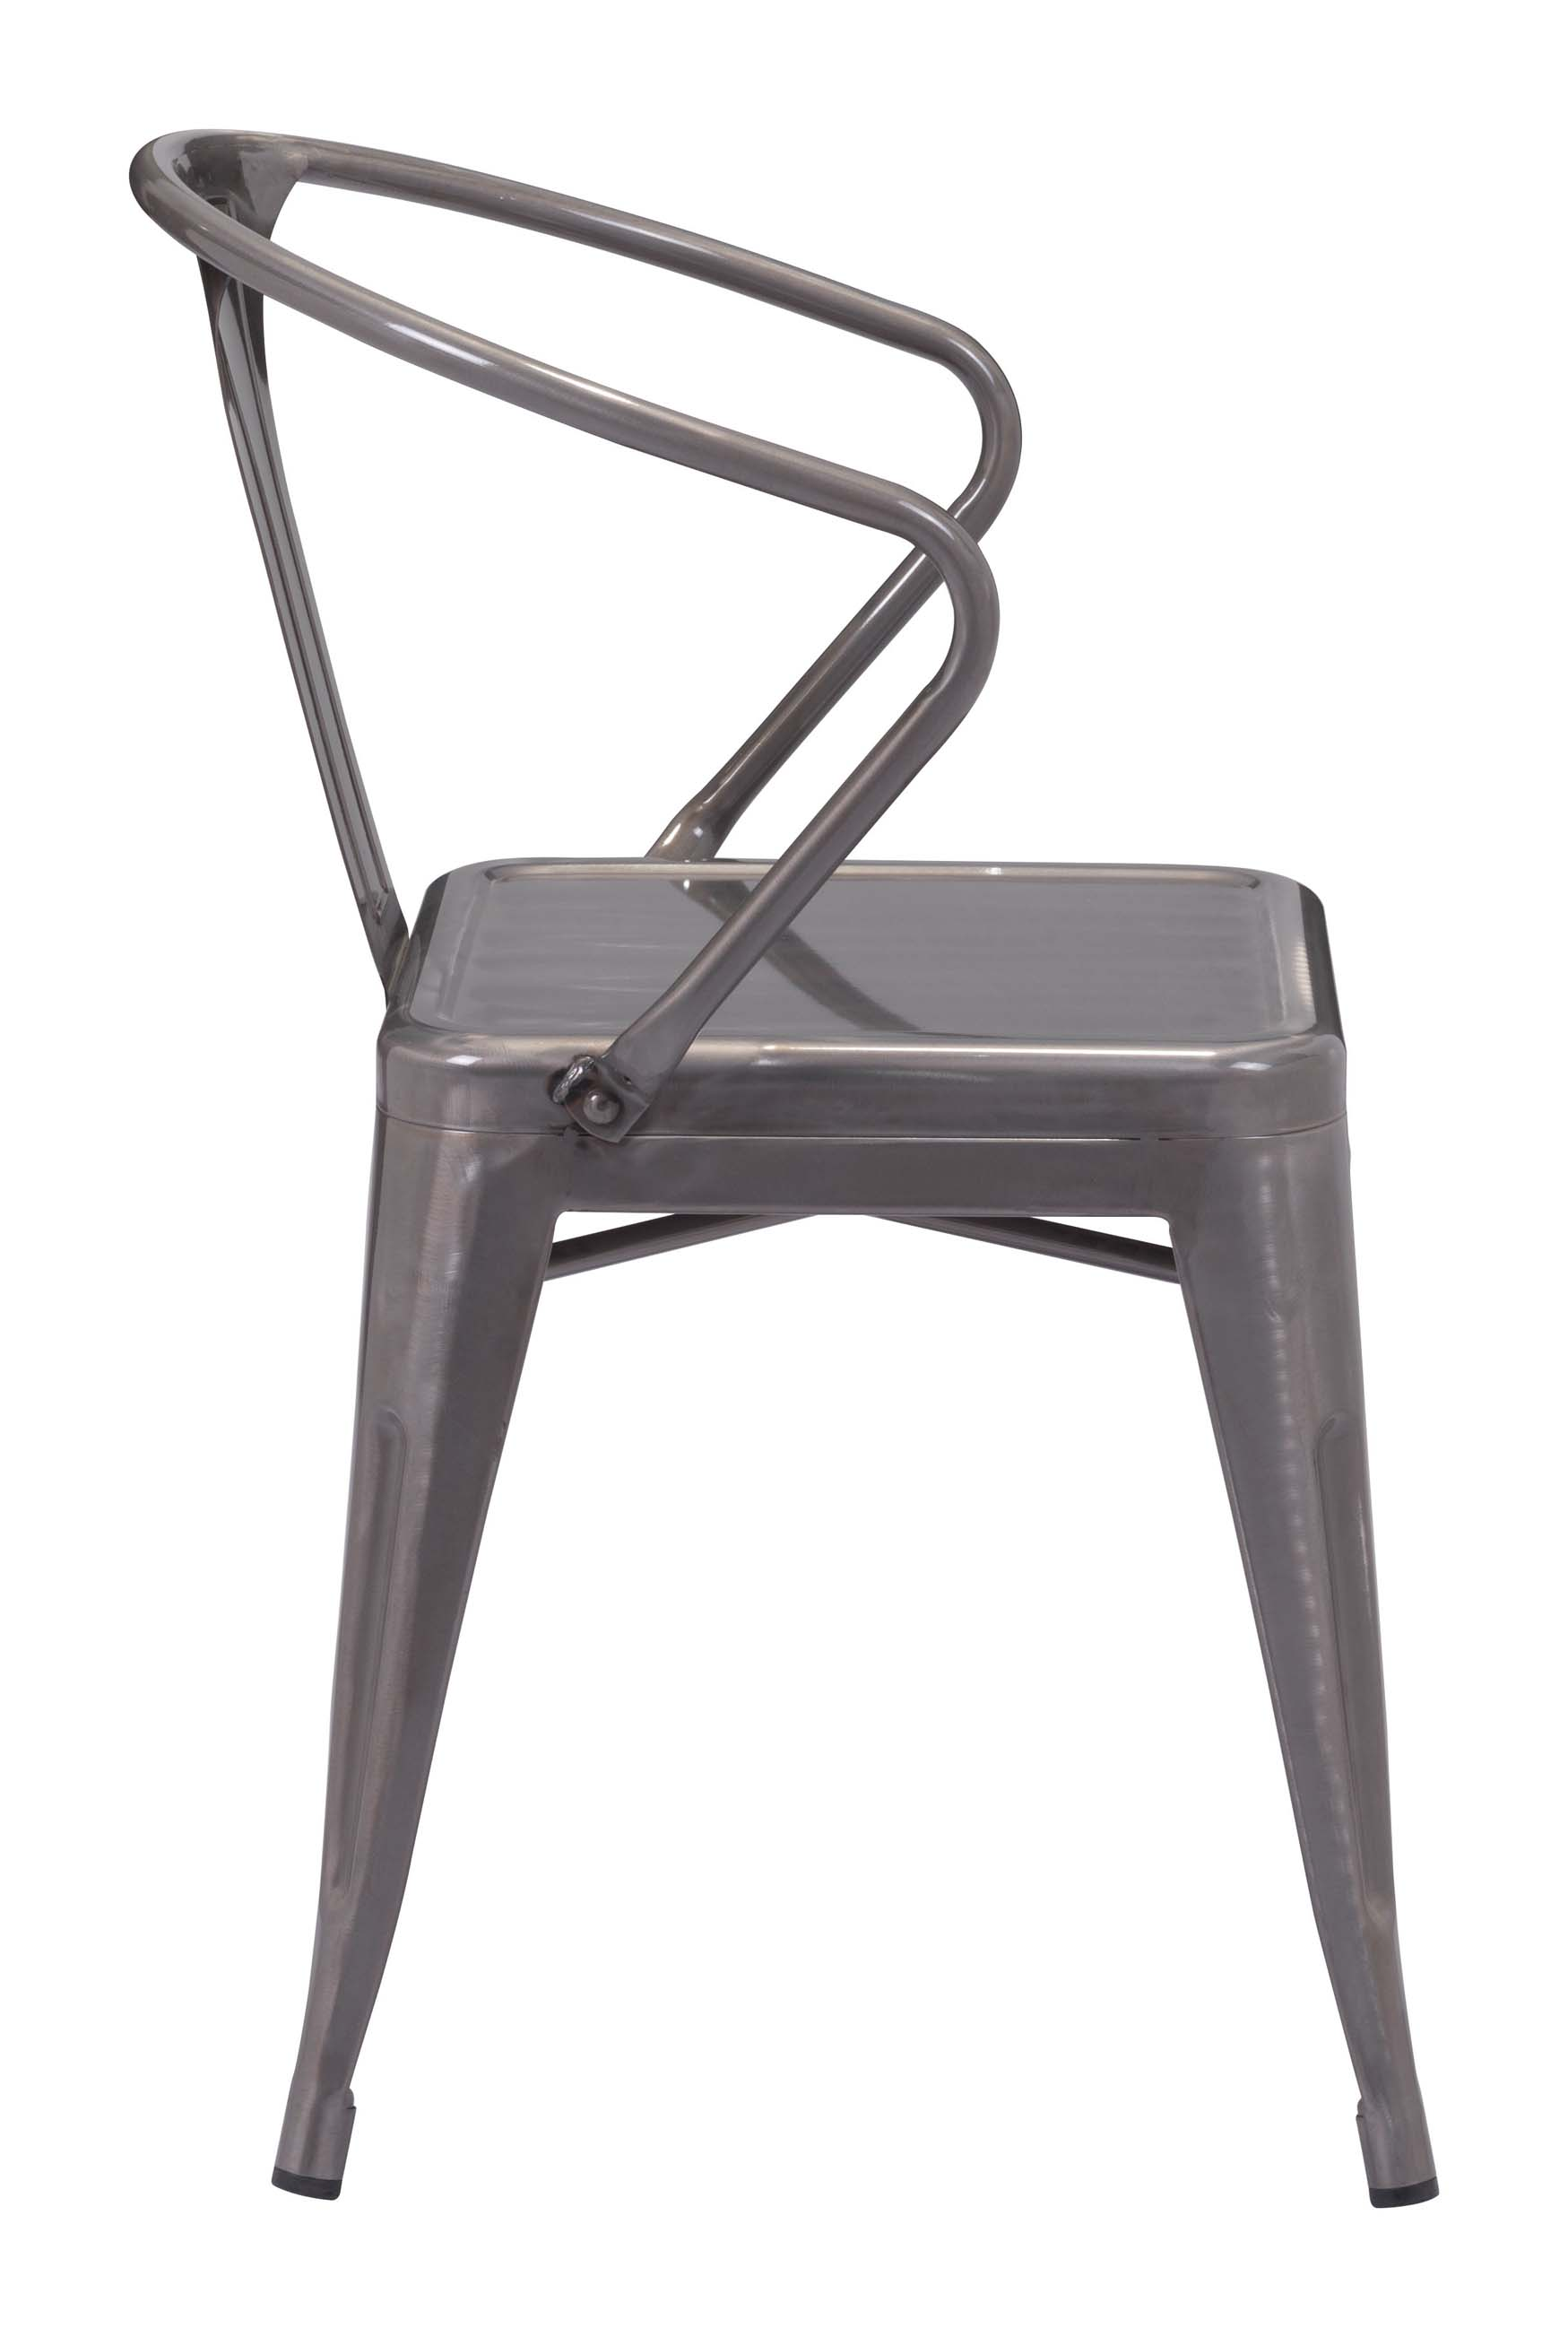 Zuo Modern Helix Dining Chair